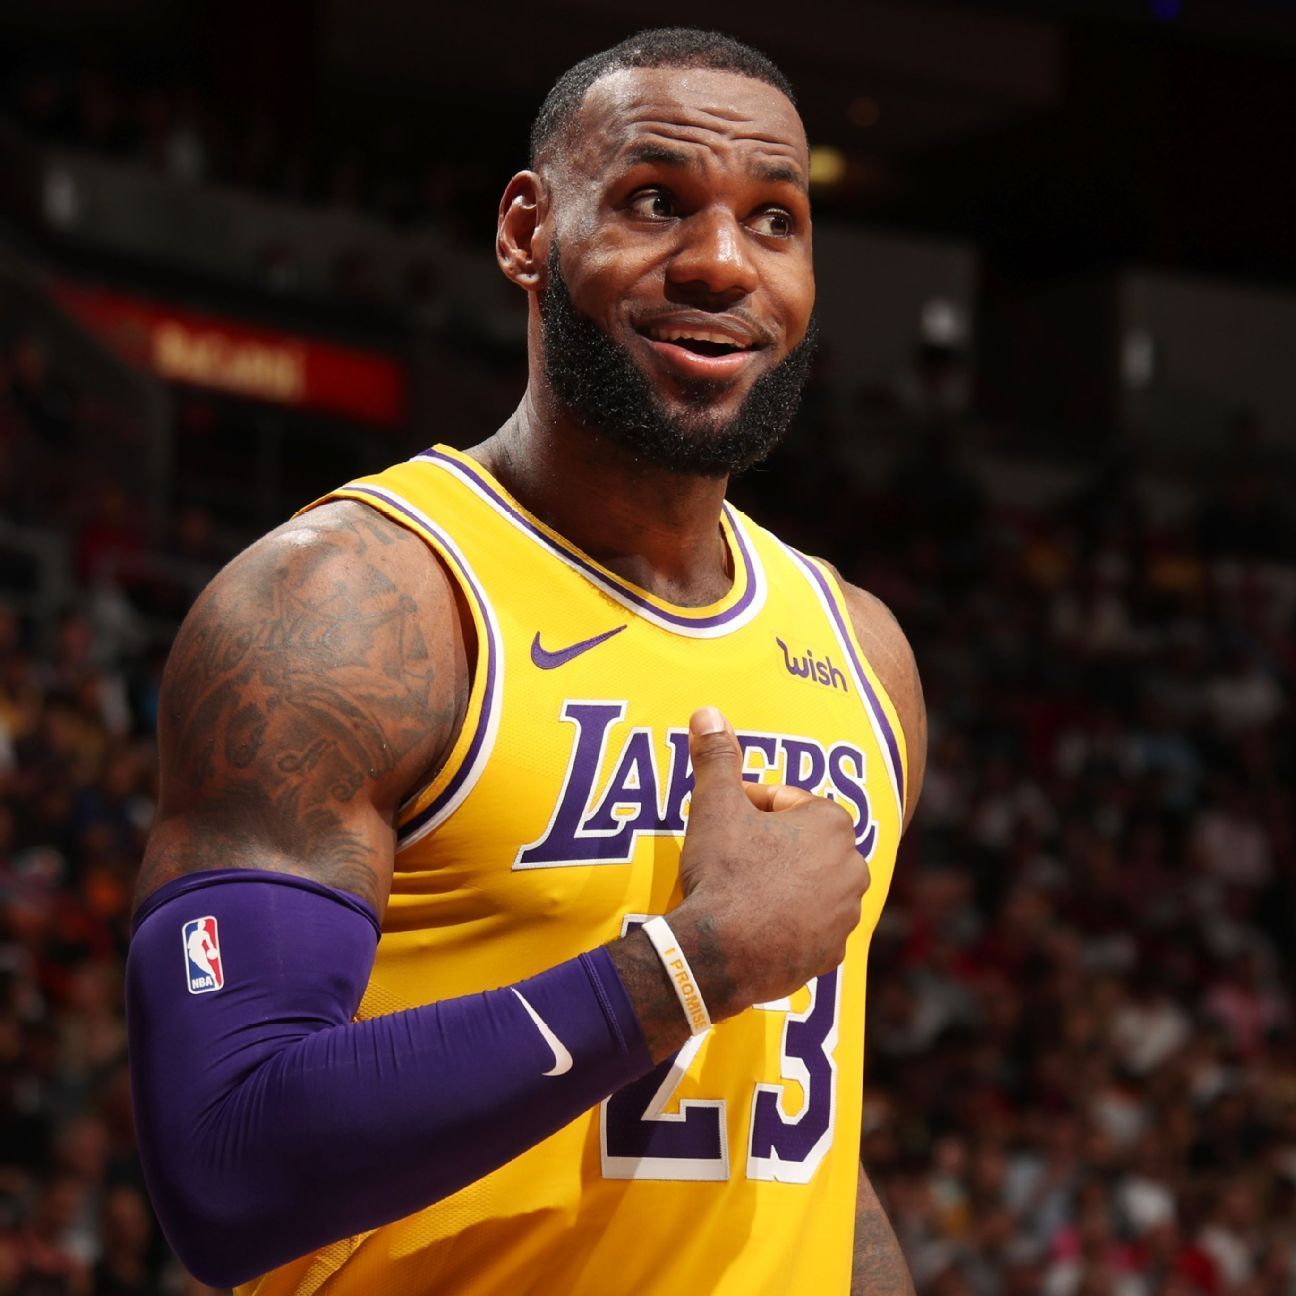 b3bba62c1 LeBron James of Los Angeles Lakers back in full-contact drills